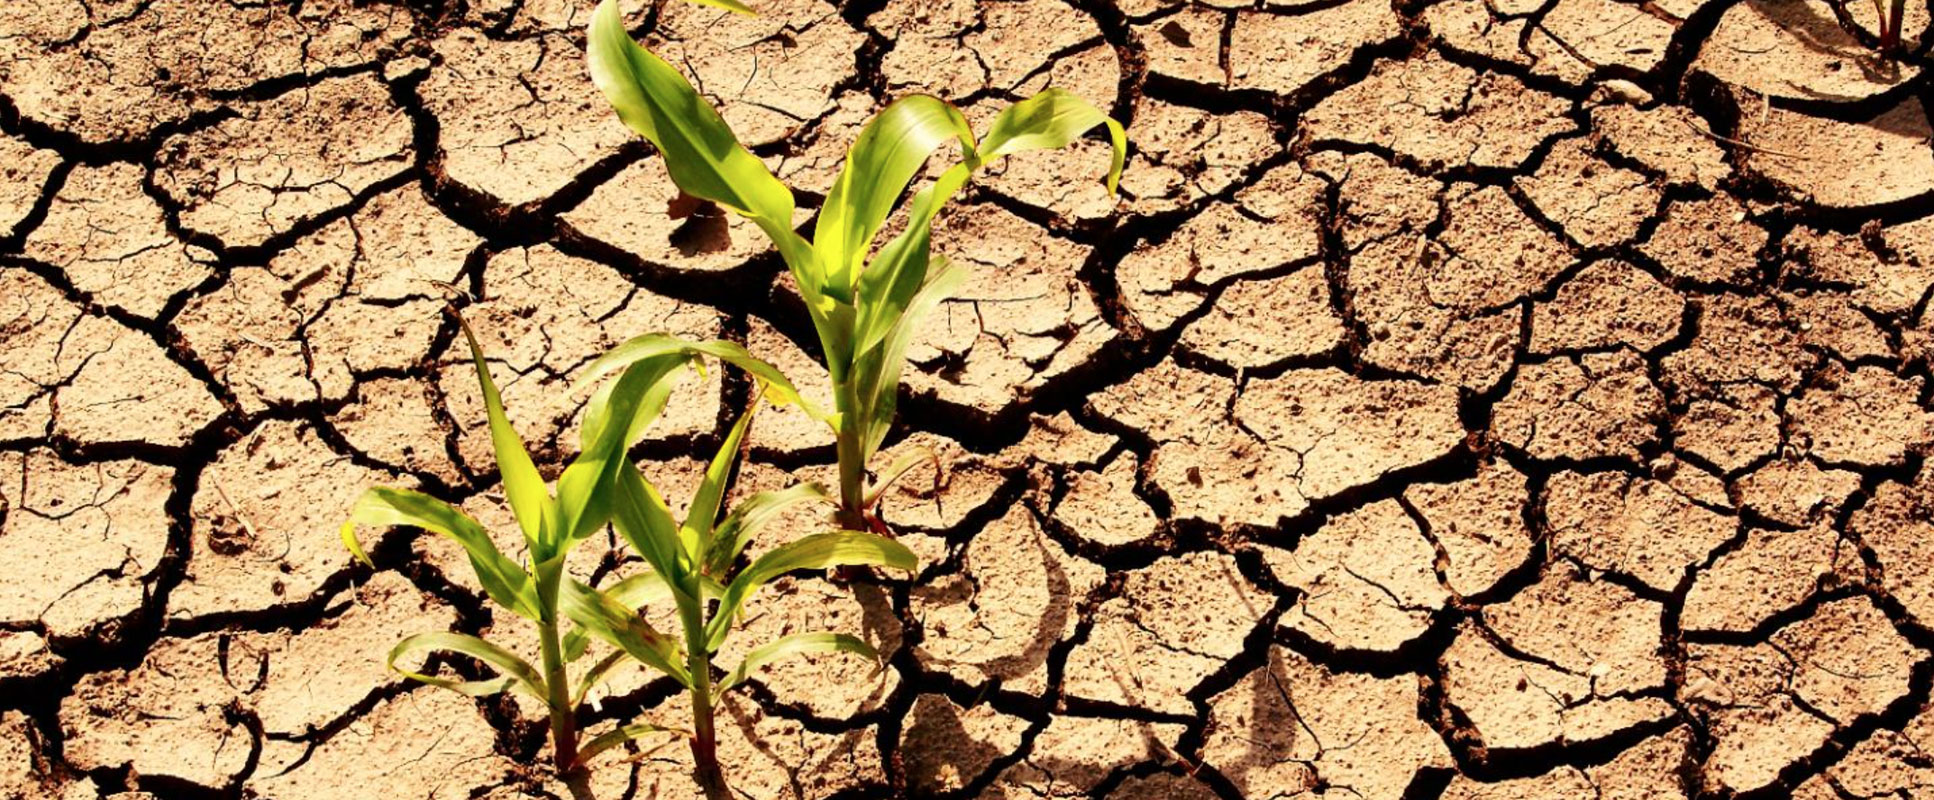 ECA plays leading role in Africa's fight against climate change